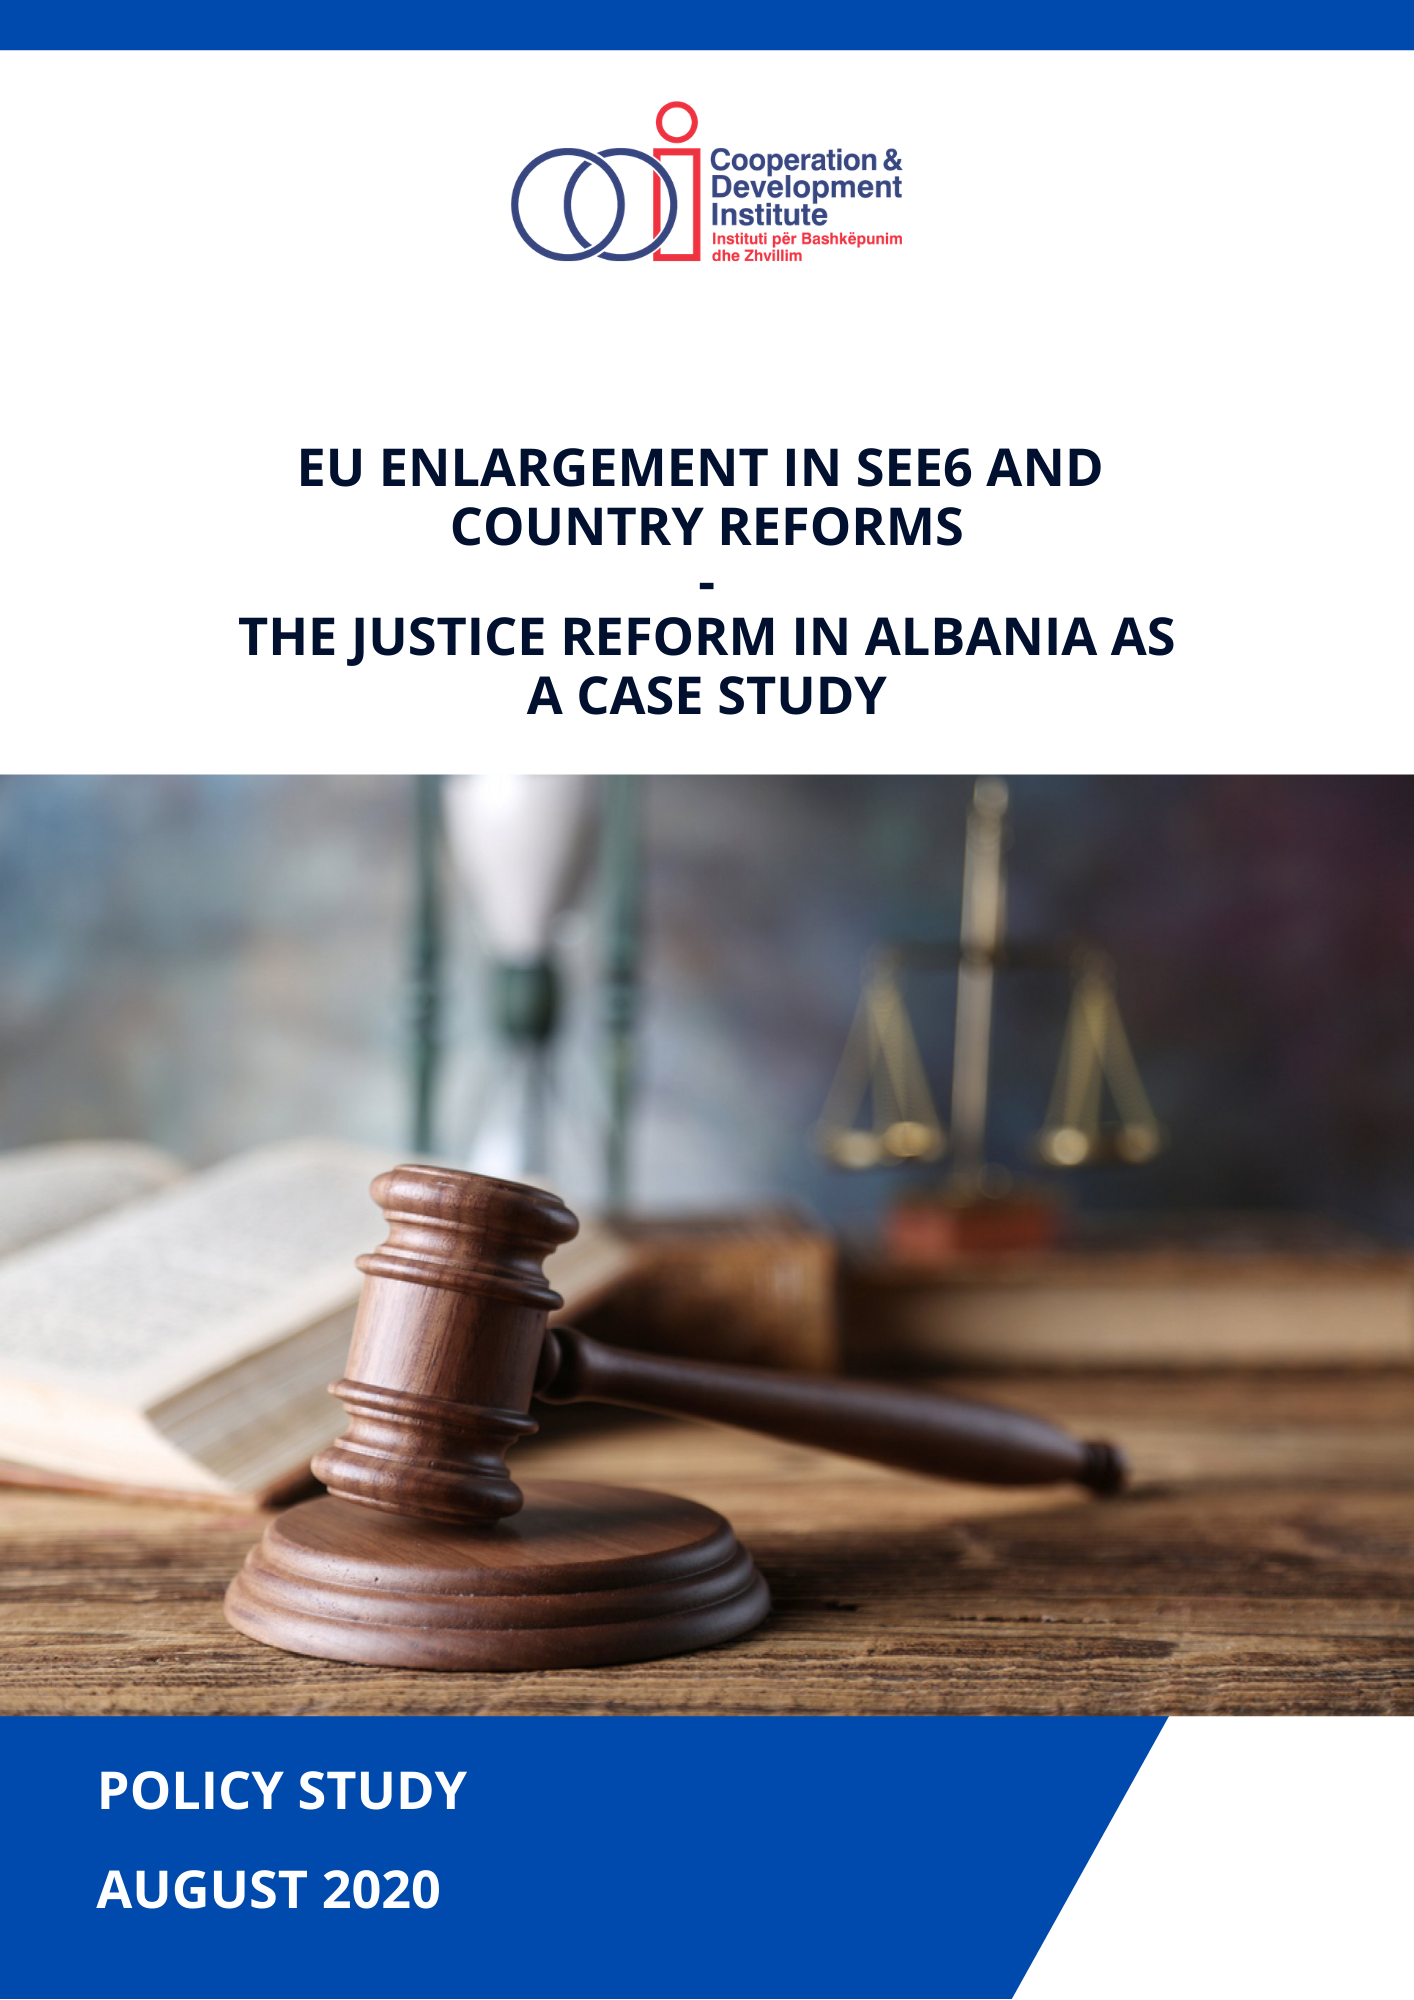 EU Enlargement in SEE6 and Country Reforms: The Justice Reform in Albania as a Case Study